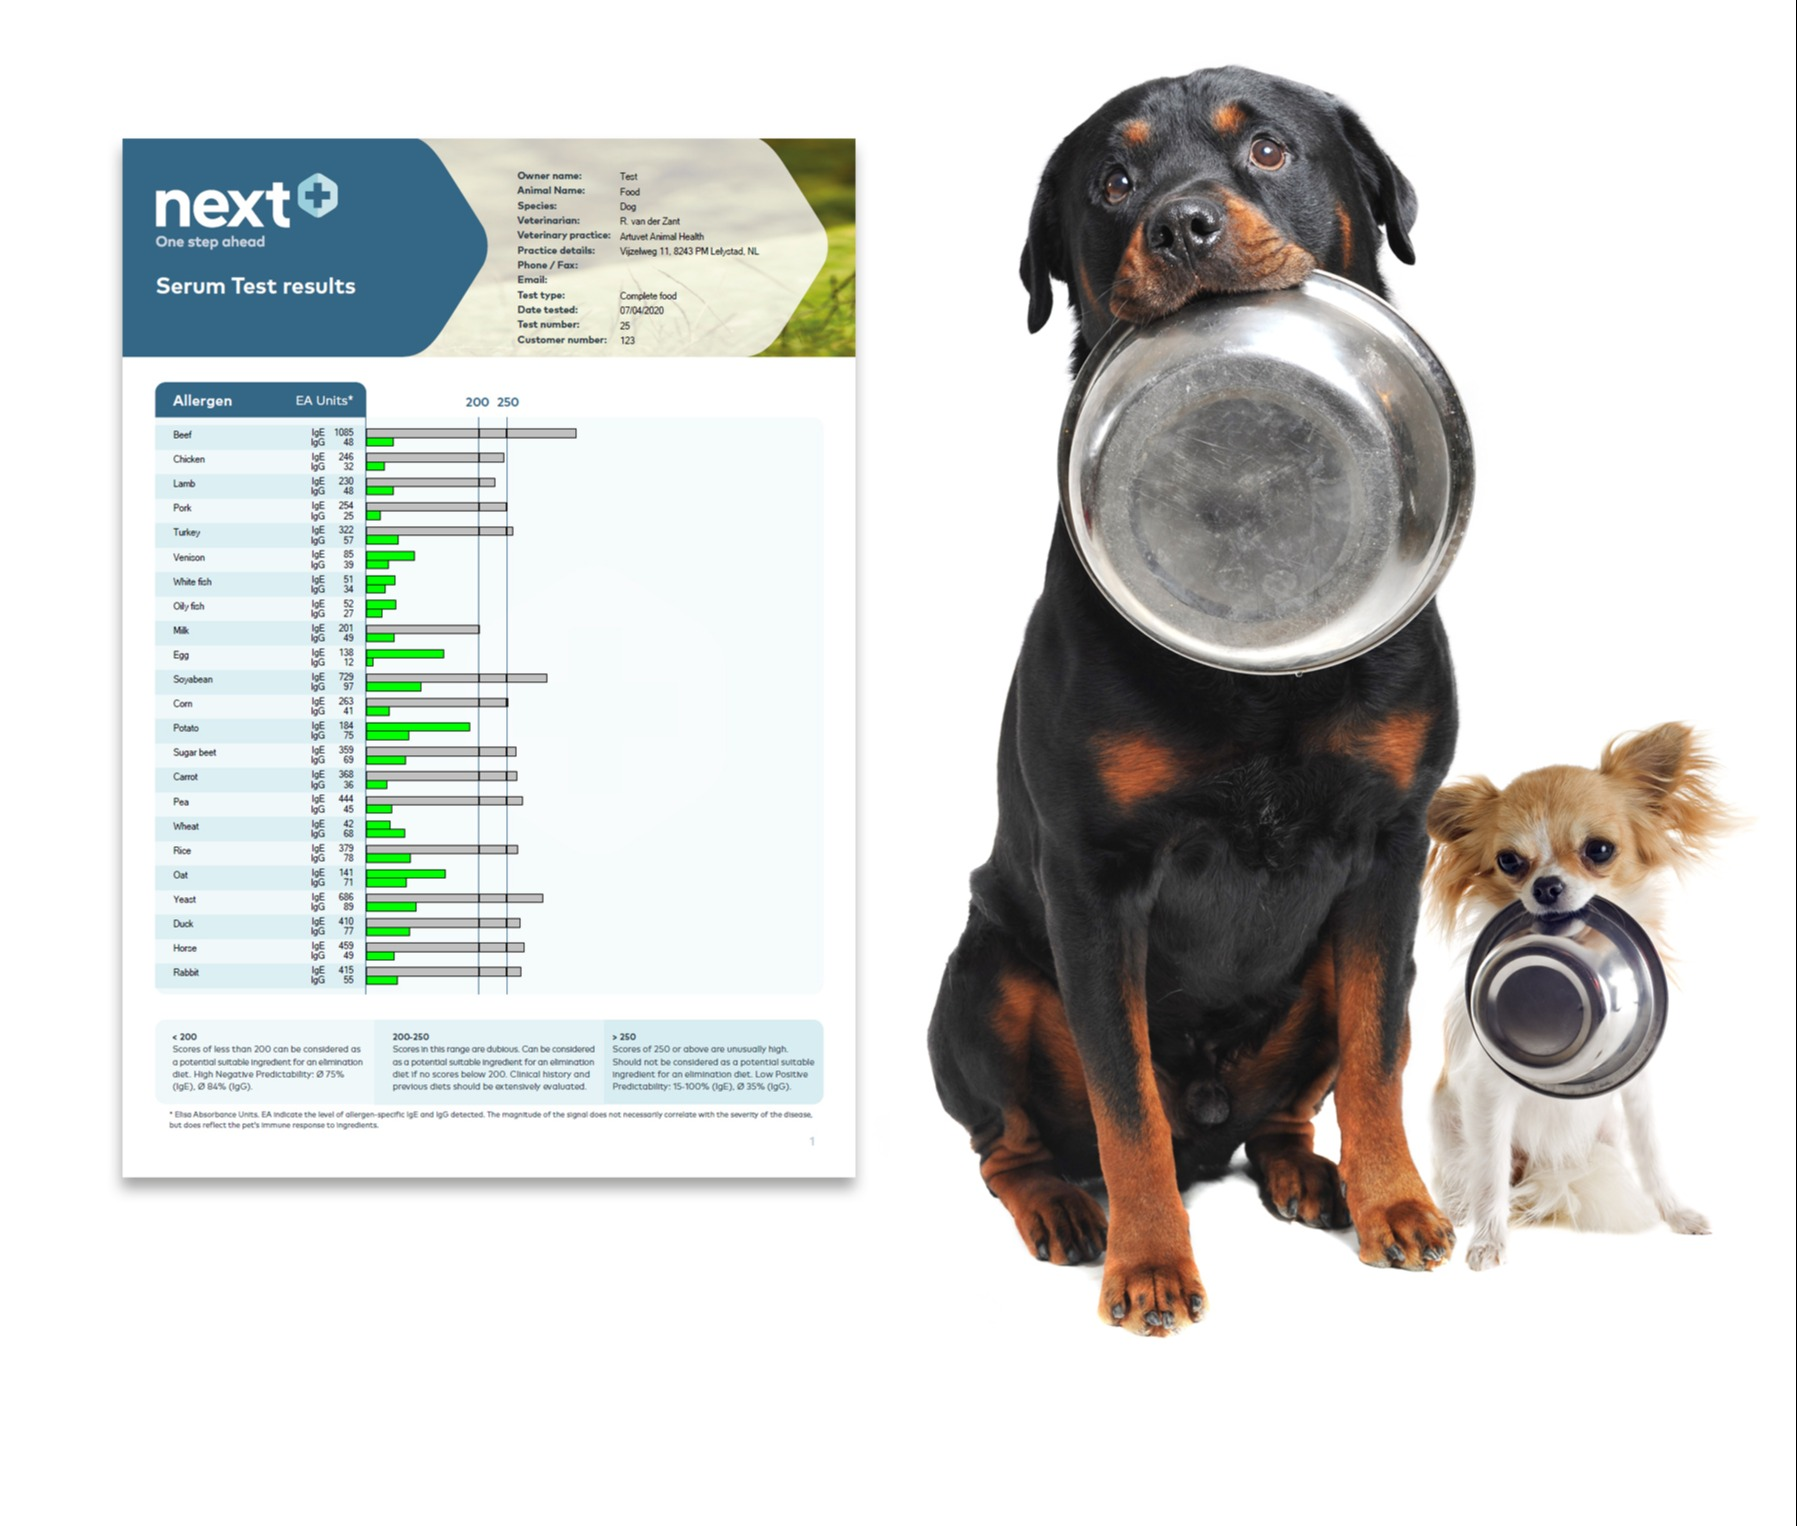 Next+ Food Reactivity Test – Now with Duck, Rabbit and Horse